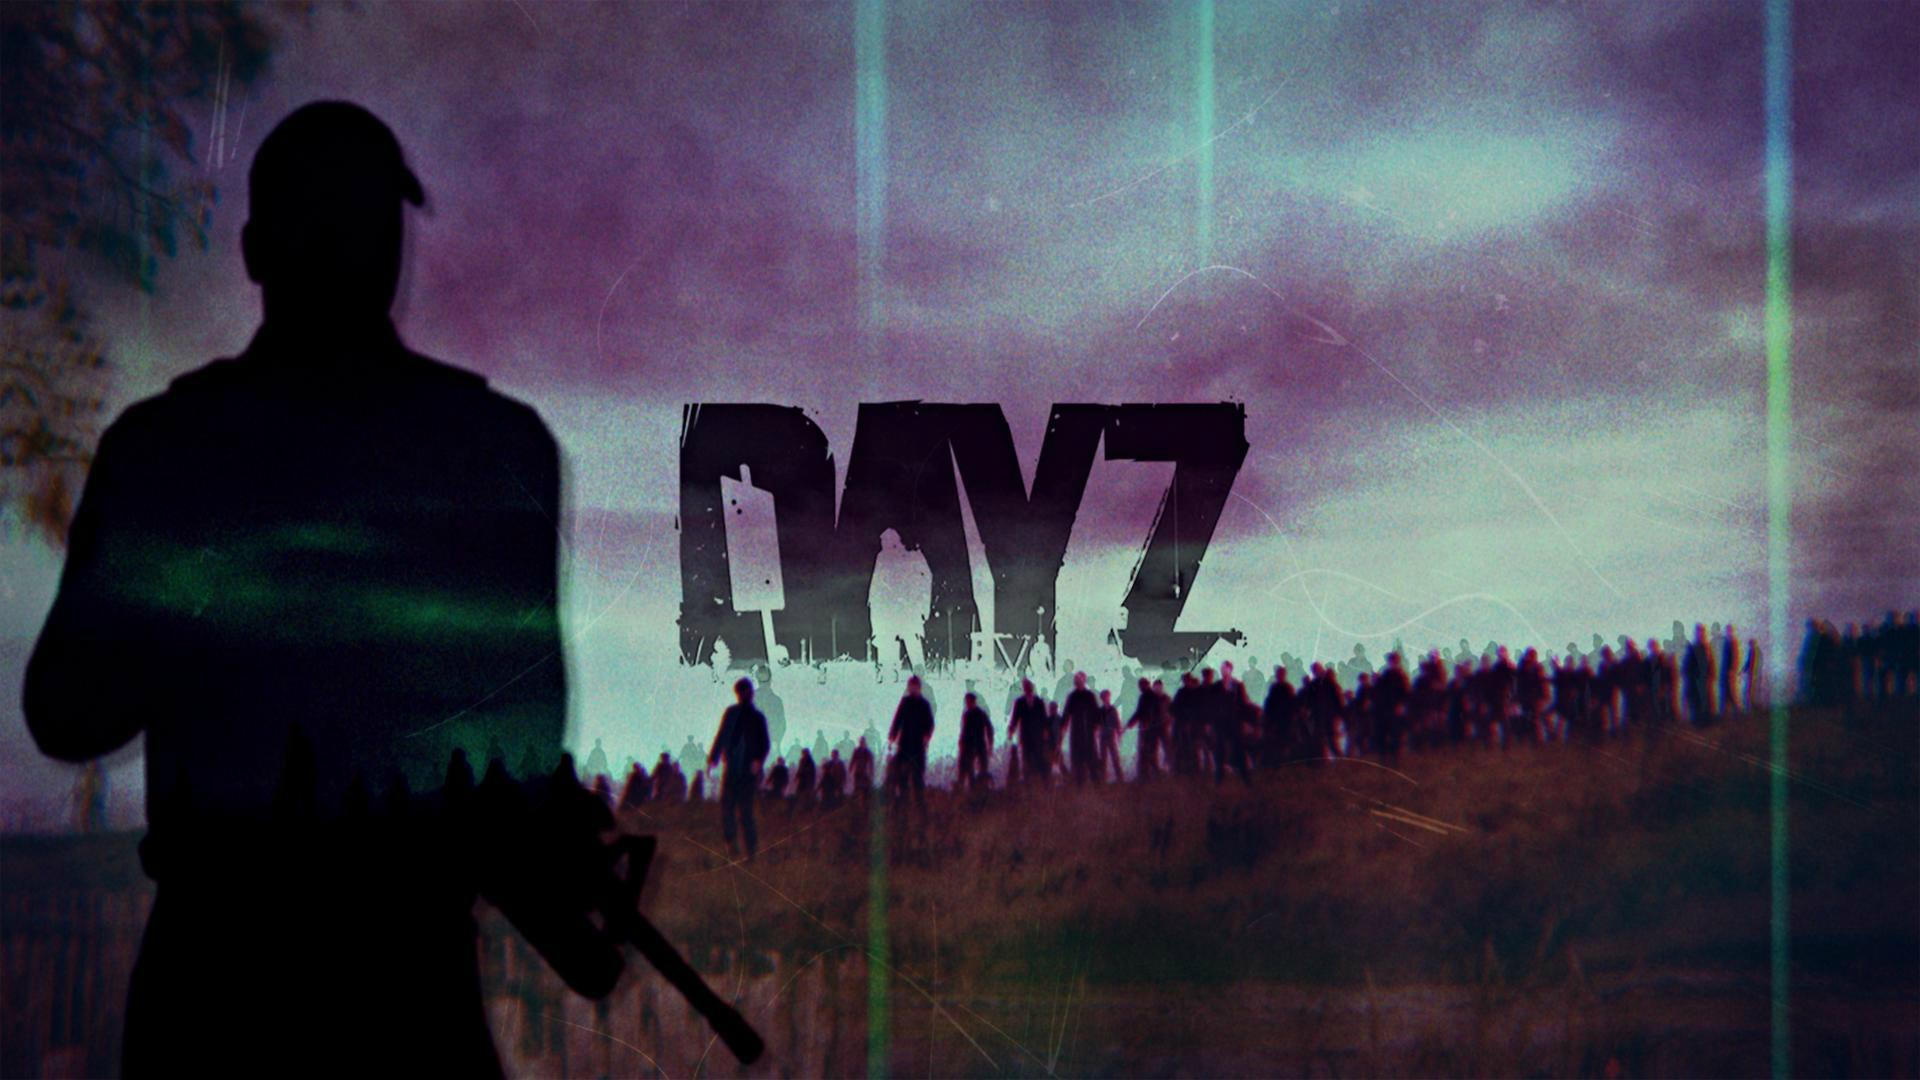 3,000,000 Survivors have arrived in DayZ